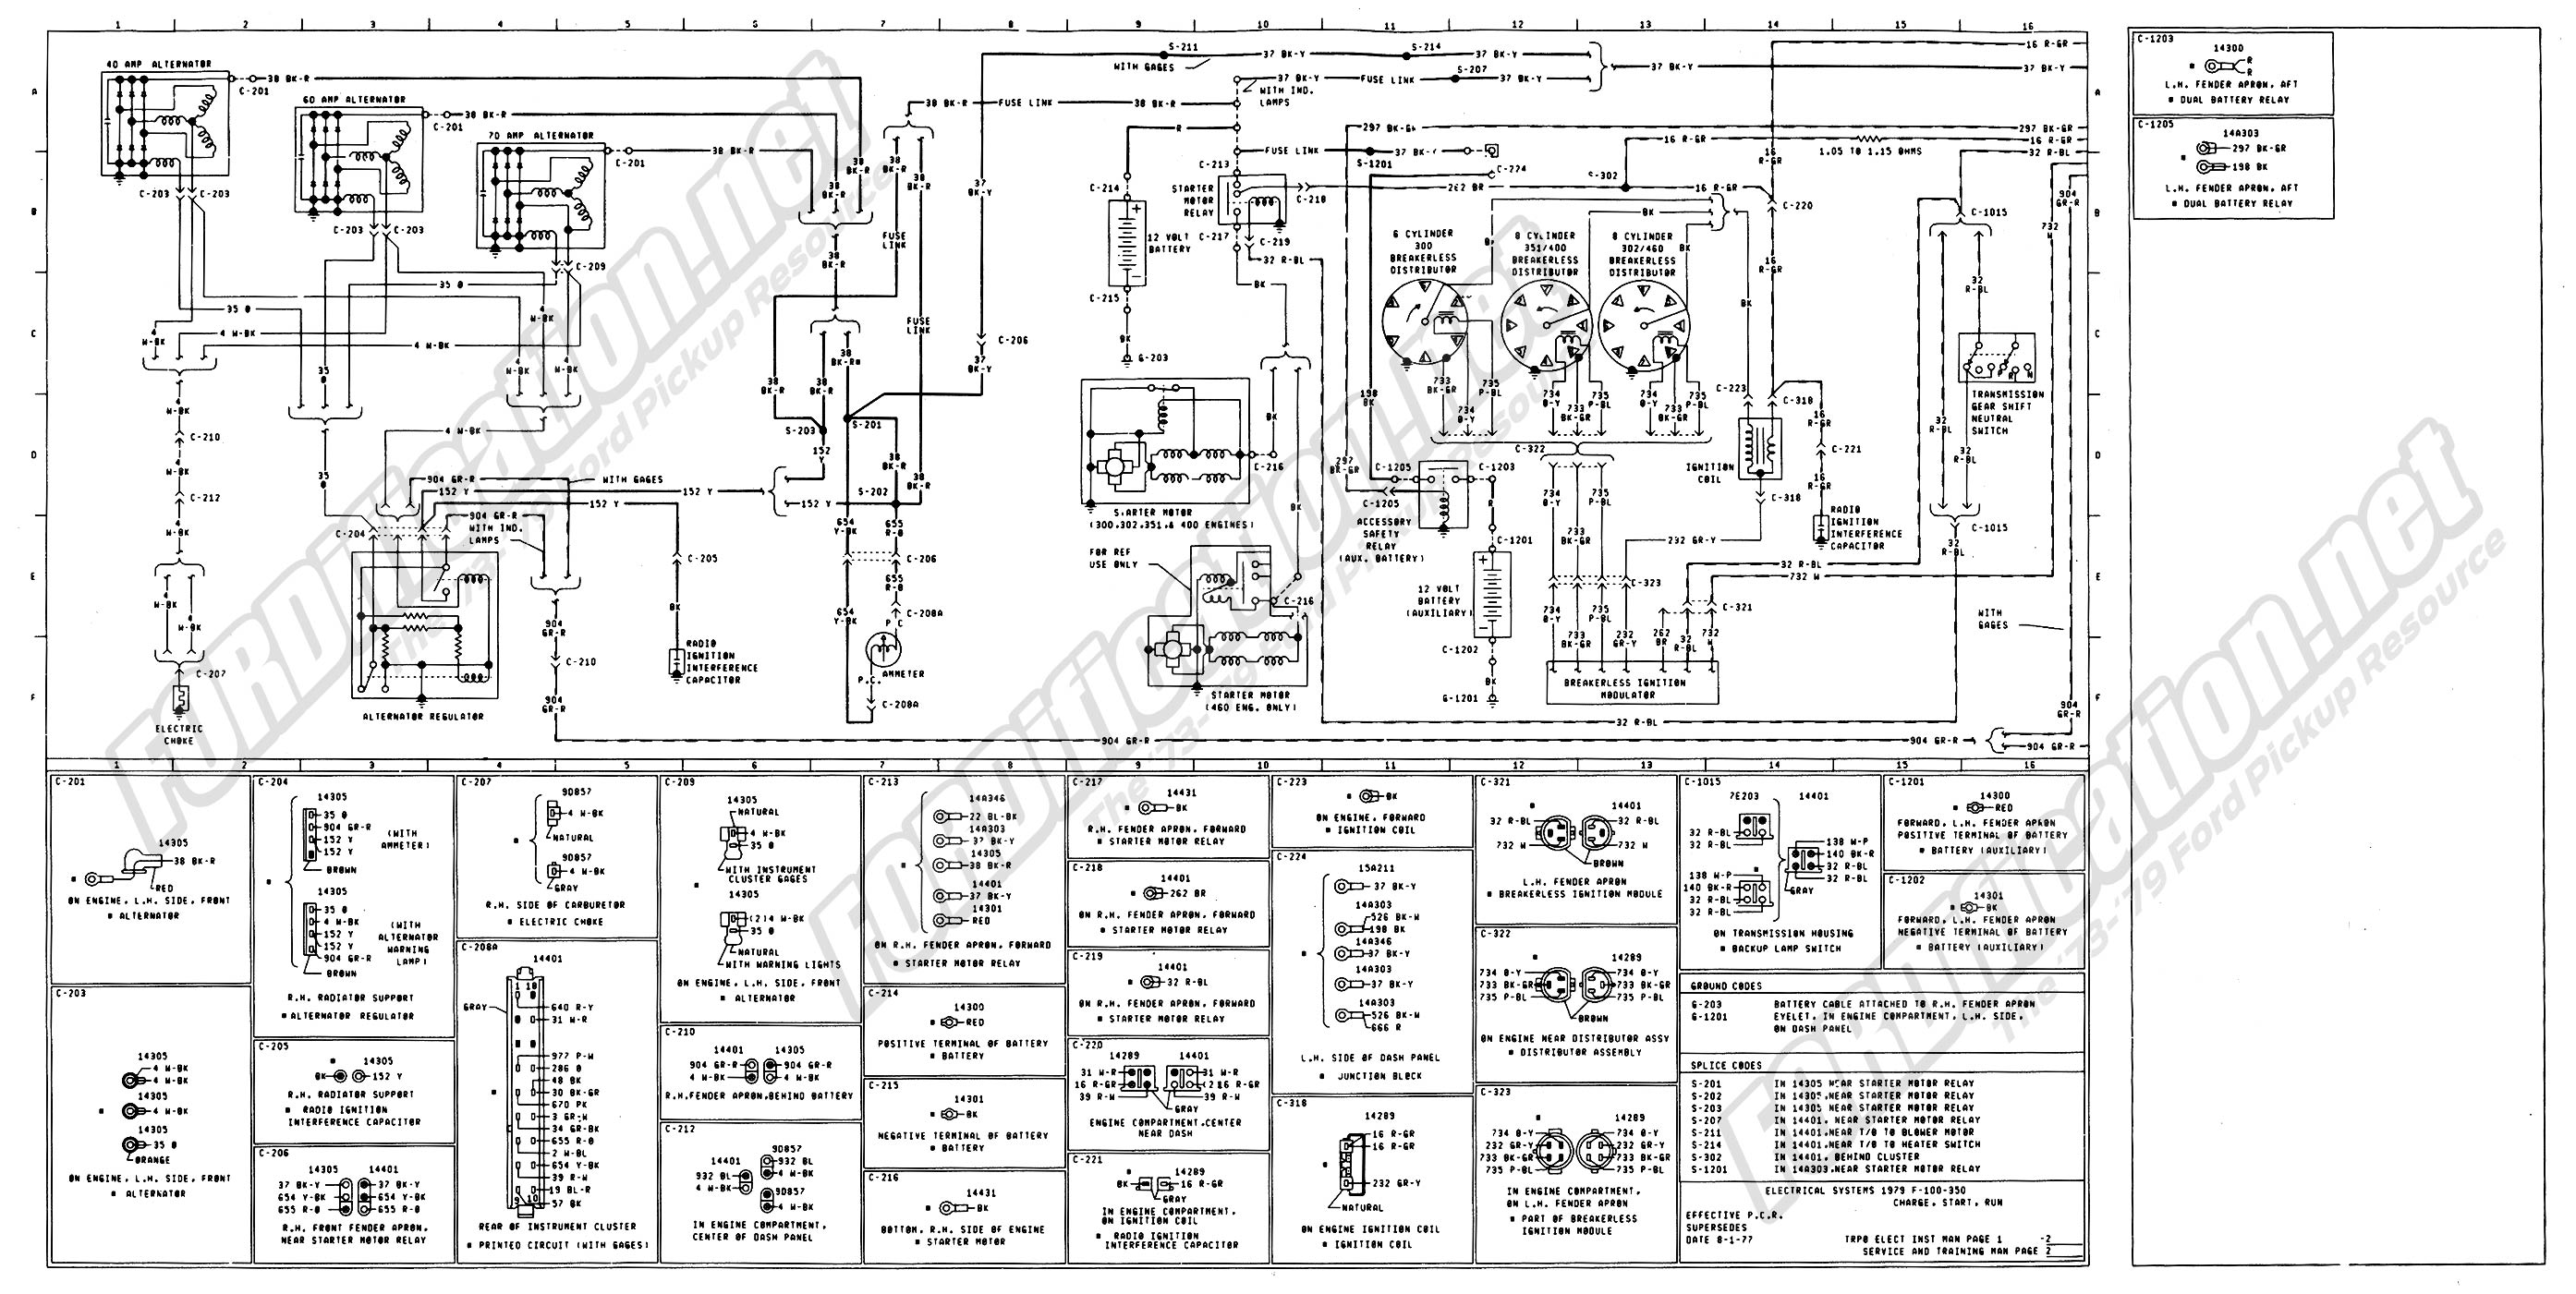 wiring_79master_2of9 1973 1979 ford truck wiring diagrams & schematics fordification net 1979 ford bronco wiring diagram at n-0.co